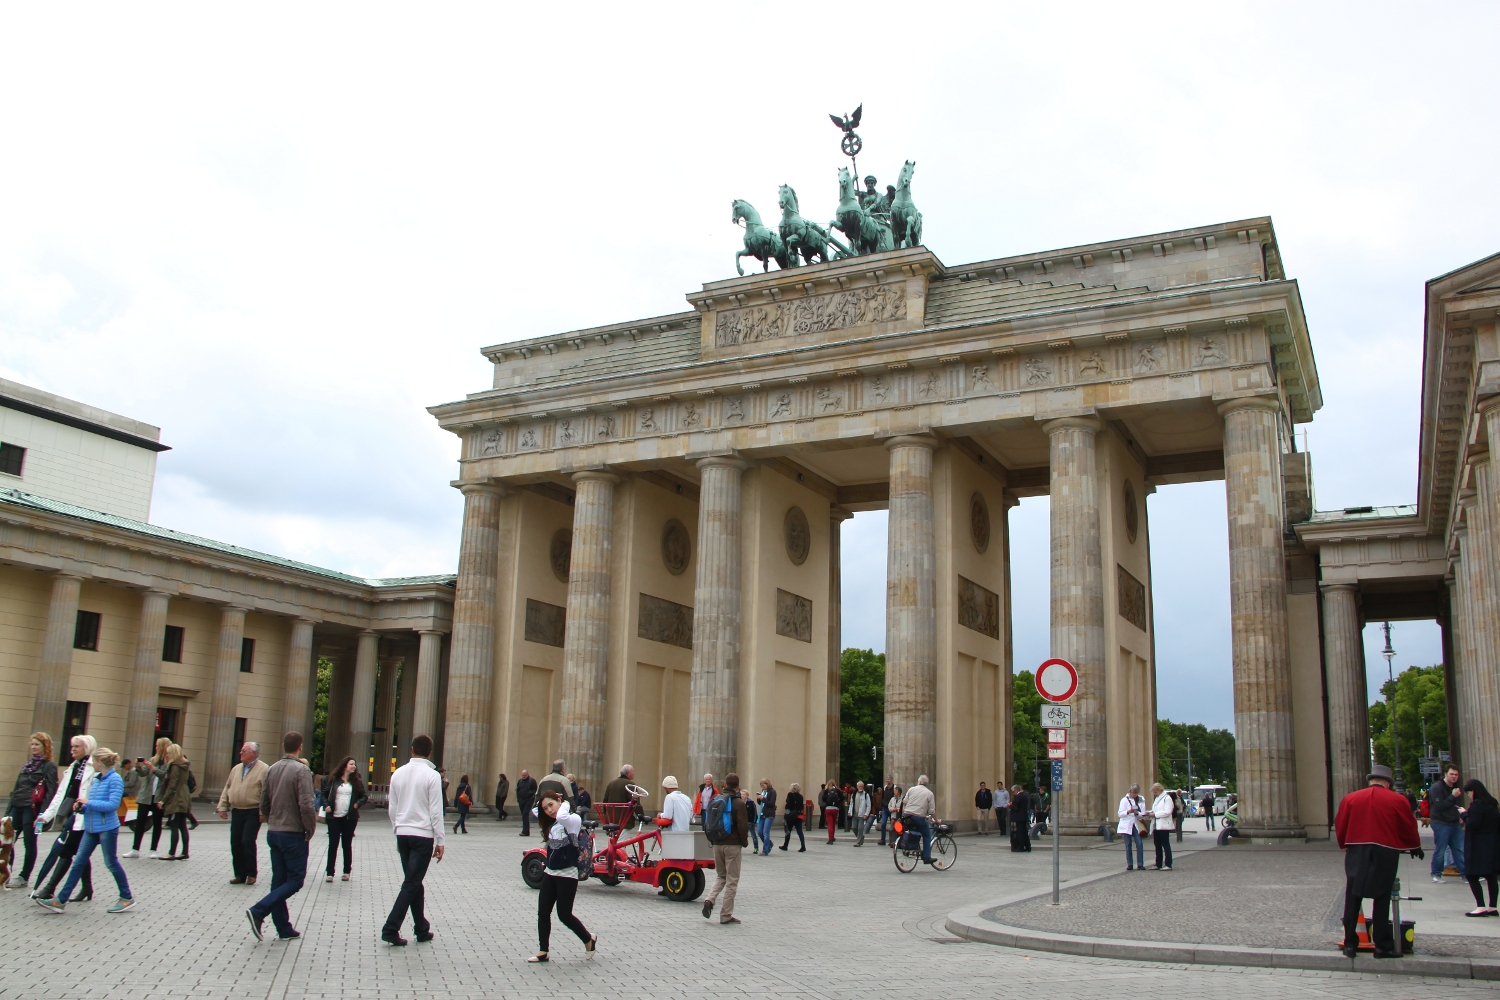 The Brandenburg Gate - front